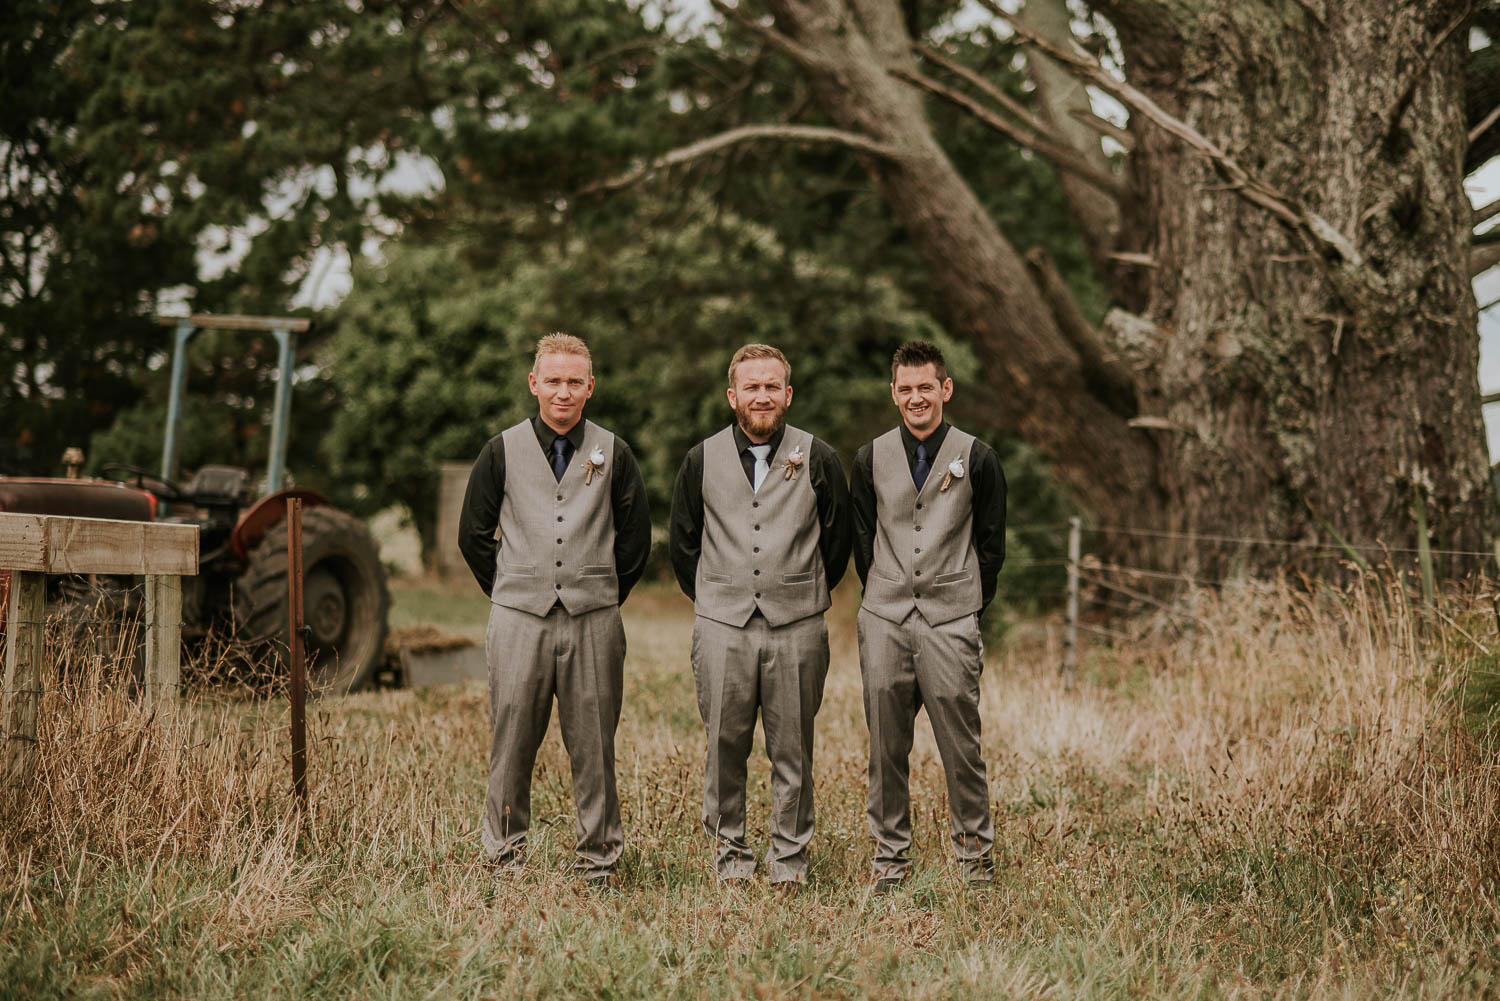 David-Alysha-Farm-Rustic-Auckland-Wedding-41